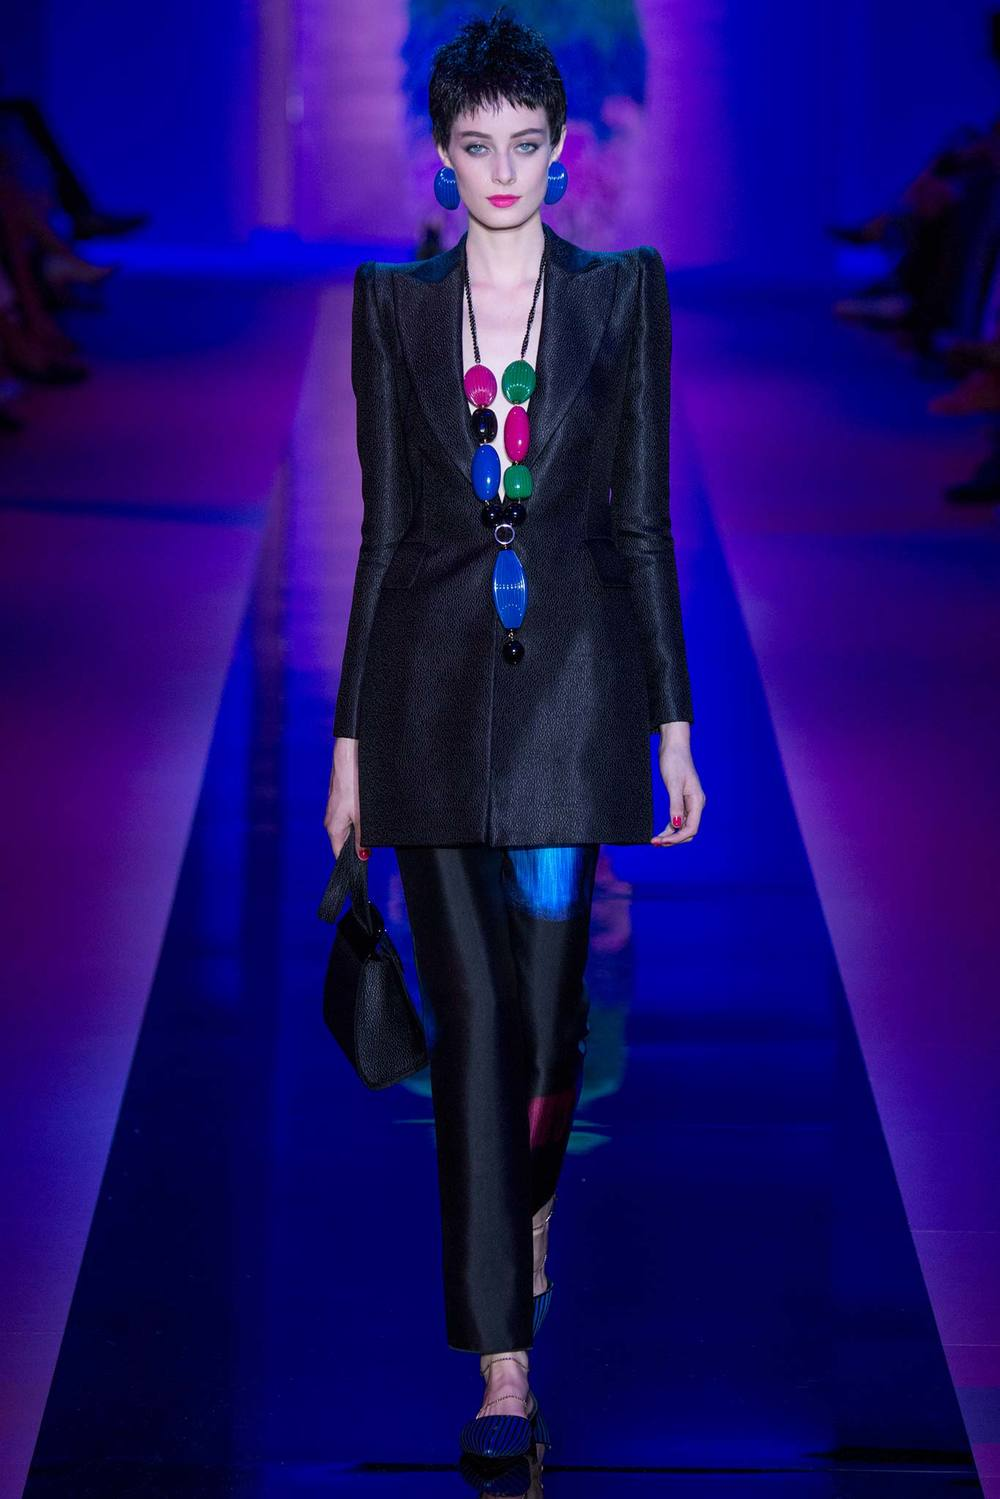 1980s realness from  Armani Privé , including massive earrings and a beaded necklace.